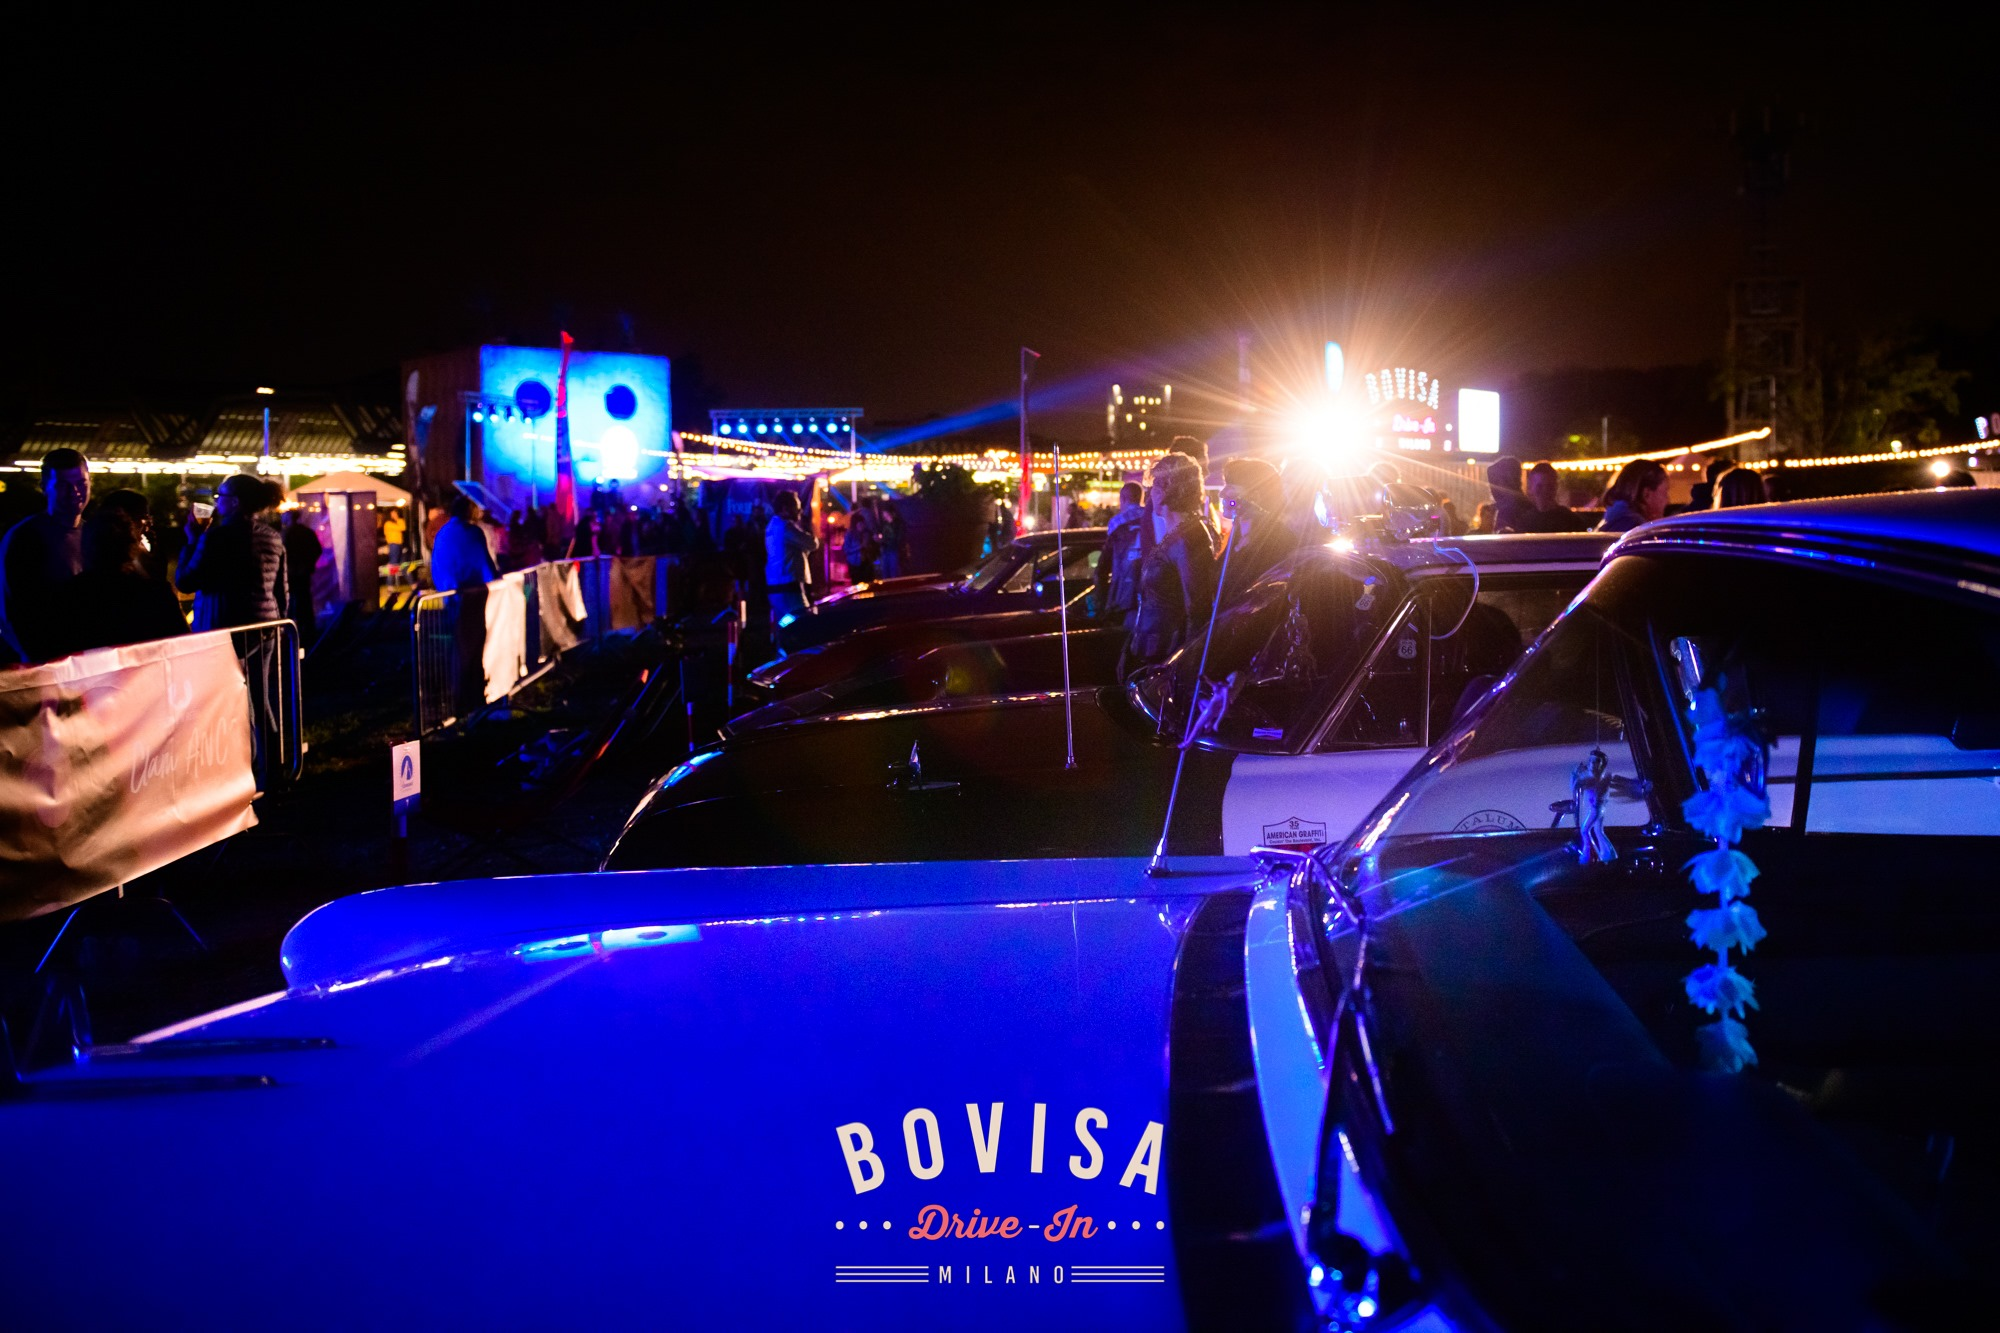 Bovisa Drive-In - Paramount Network Grease Experience YOUparti week-end all'italiana